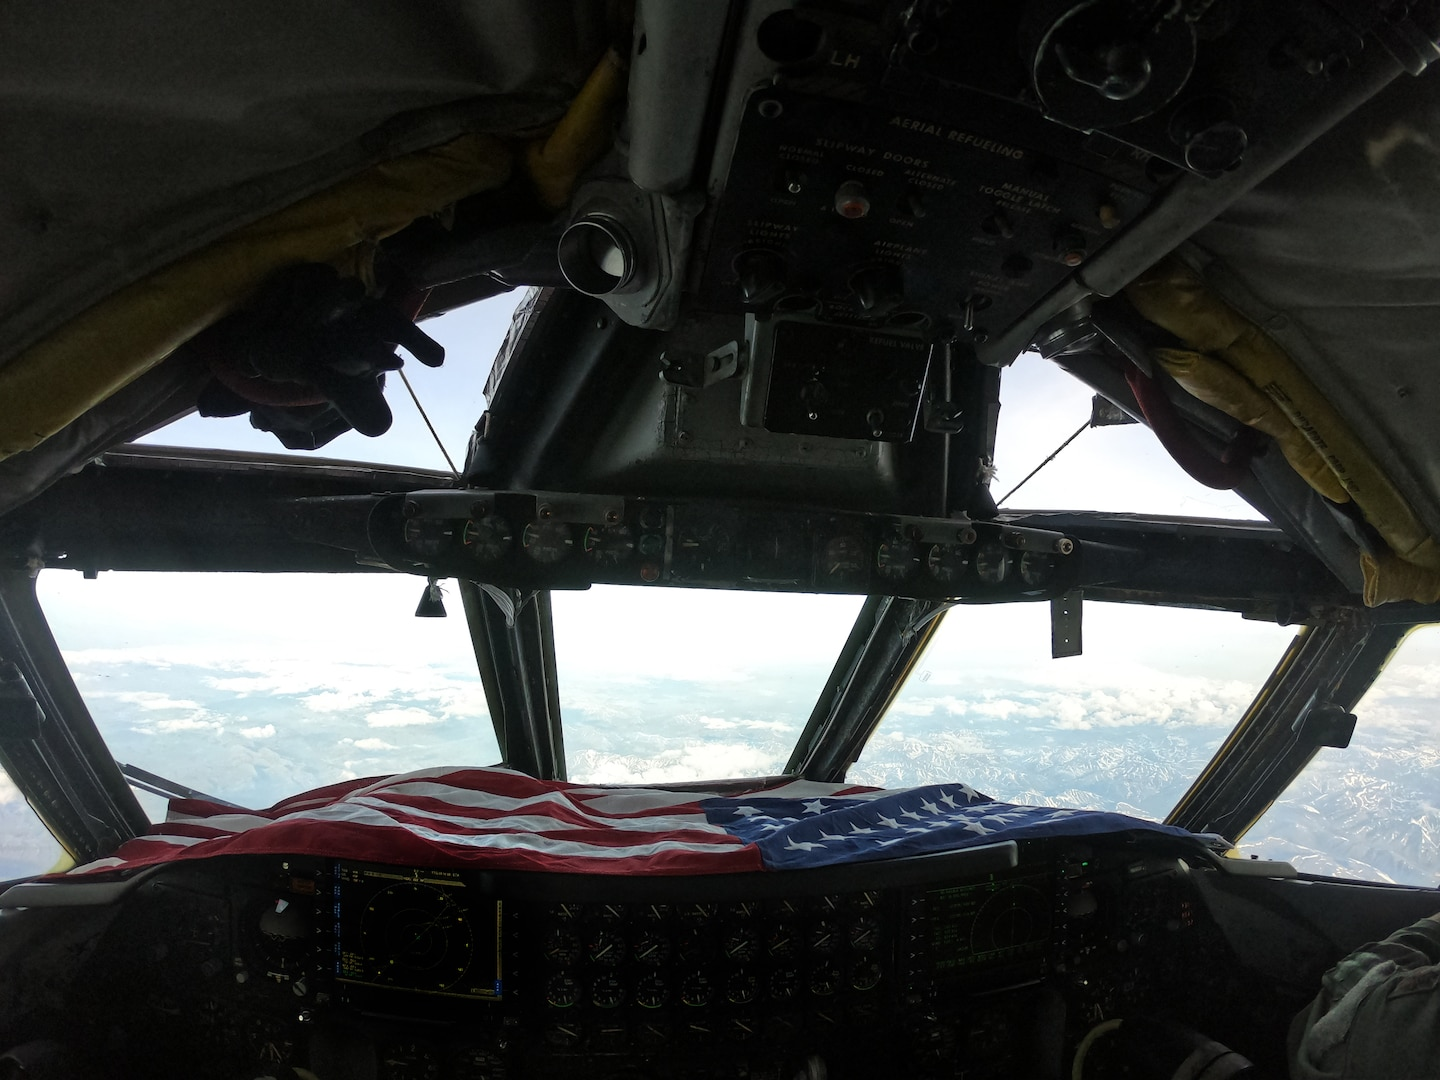 An American flag sits in the cockpit of a B-52 Stratofortress during a North American Aerospace Defense Command (NORAD) mission, June 14, 2020. NORAD routinely conducts intercept training in support of its mission to protect the sovereign airspaces of the United States and Canada. (Courtesy Photo)